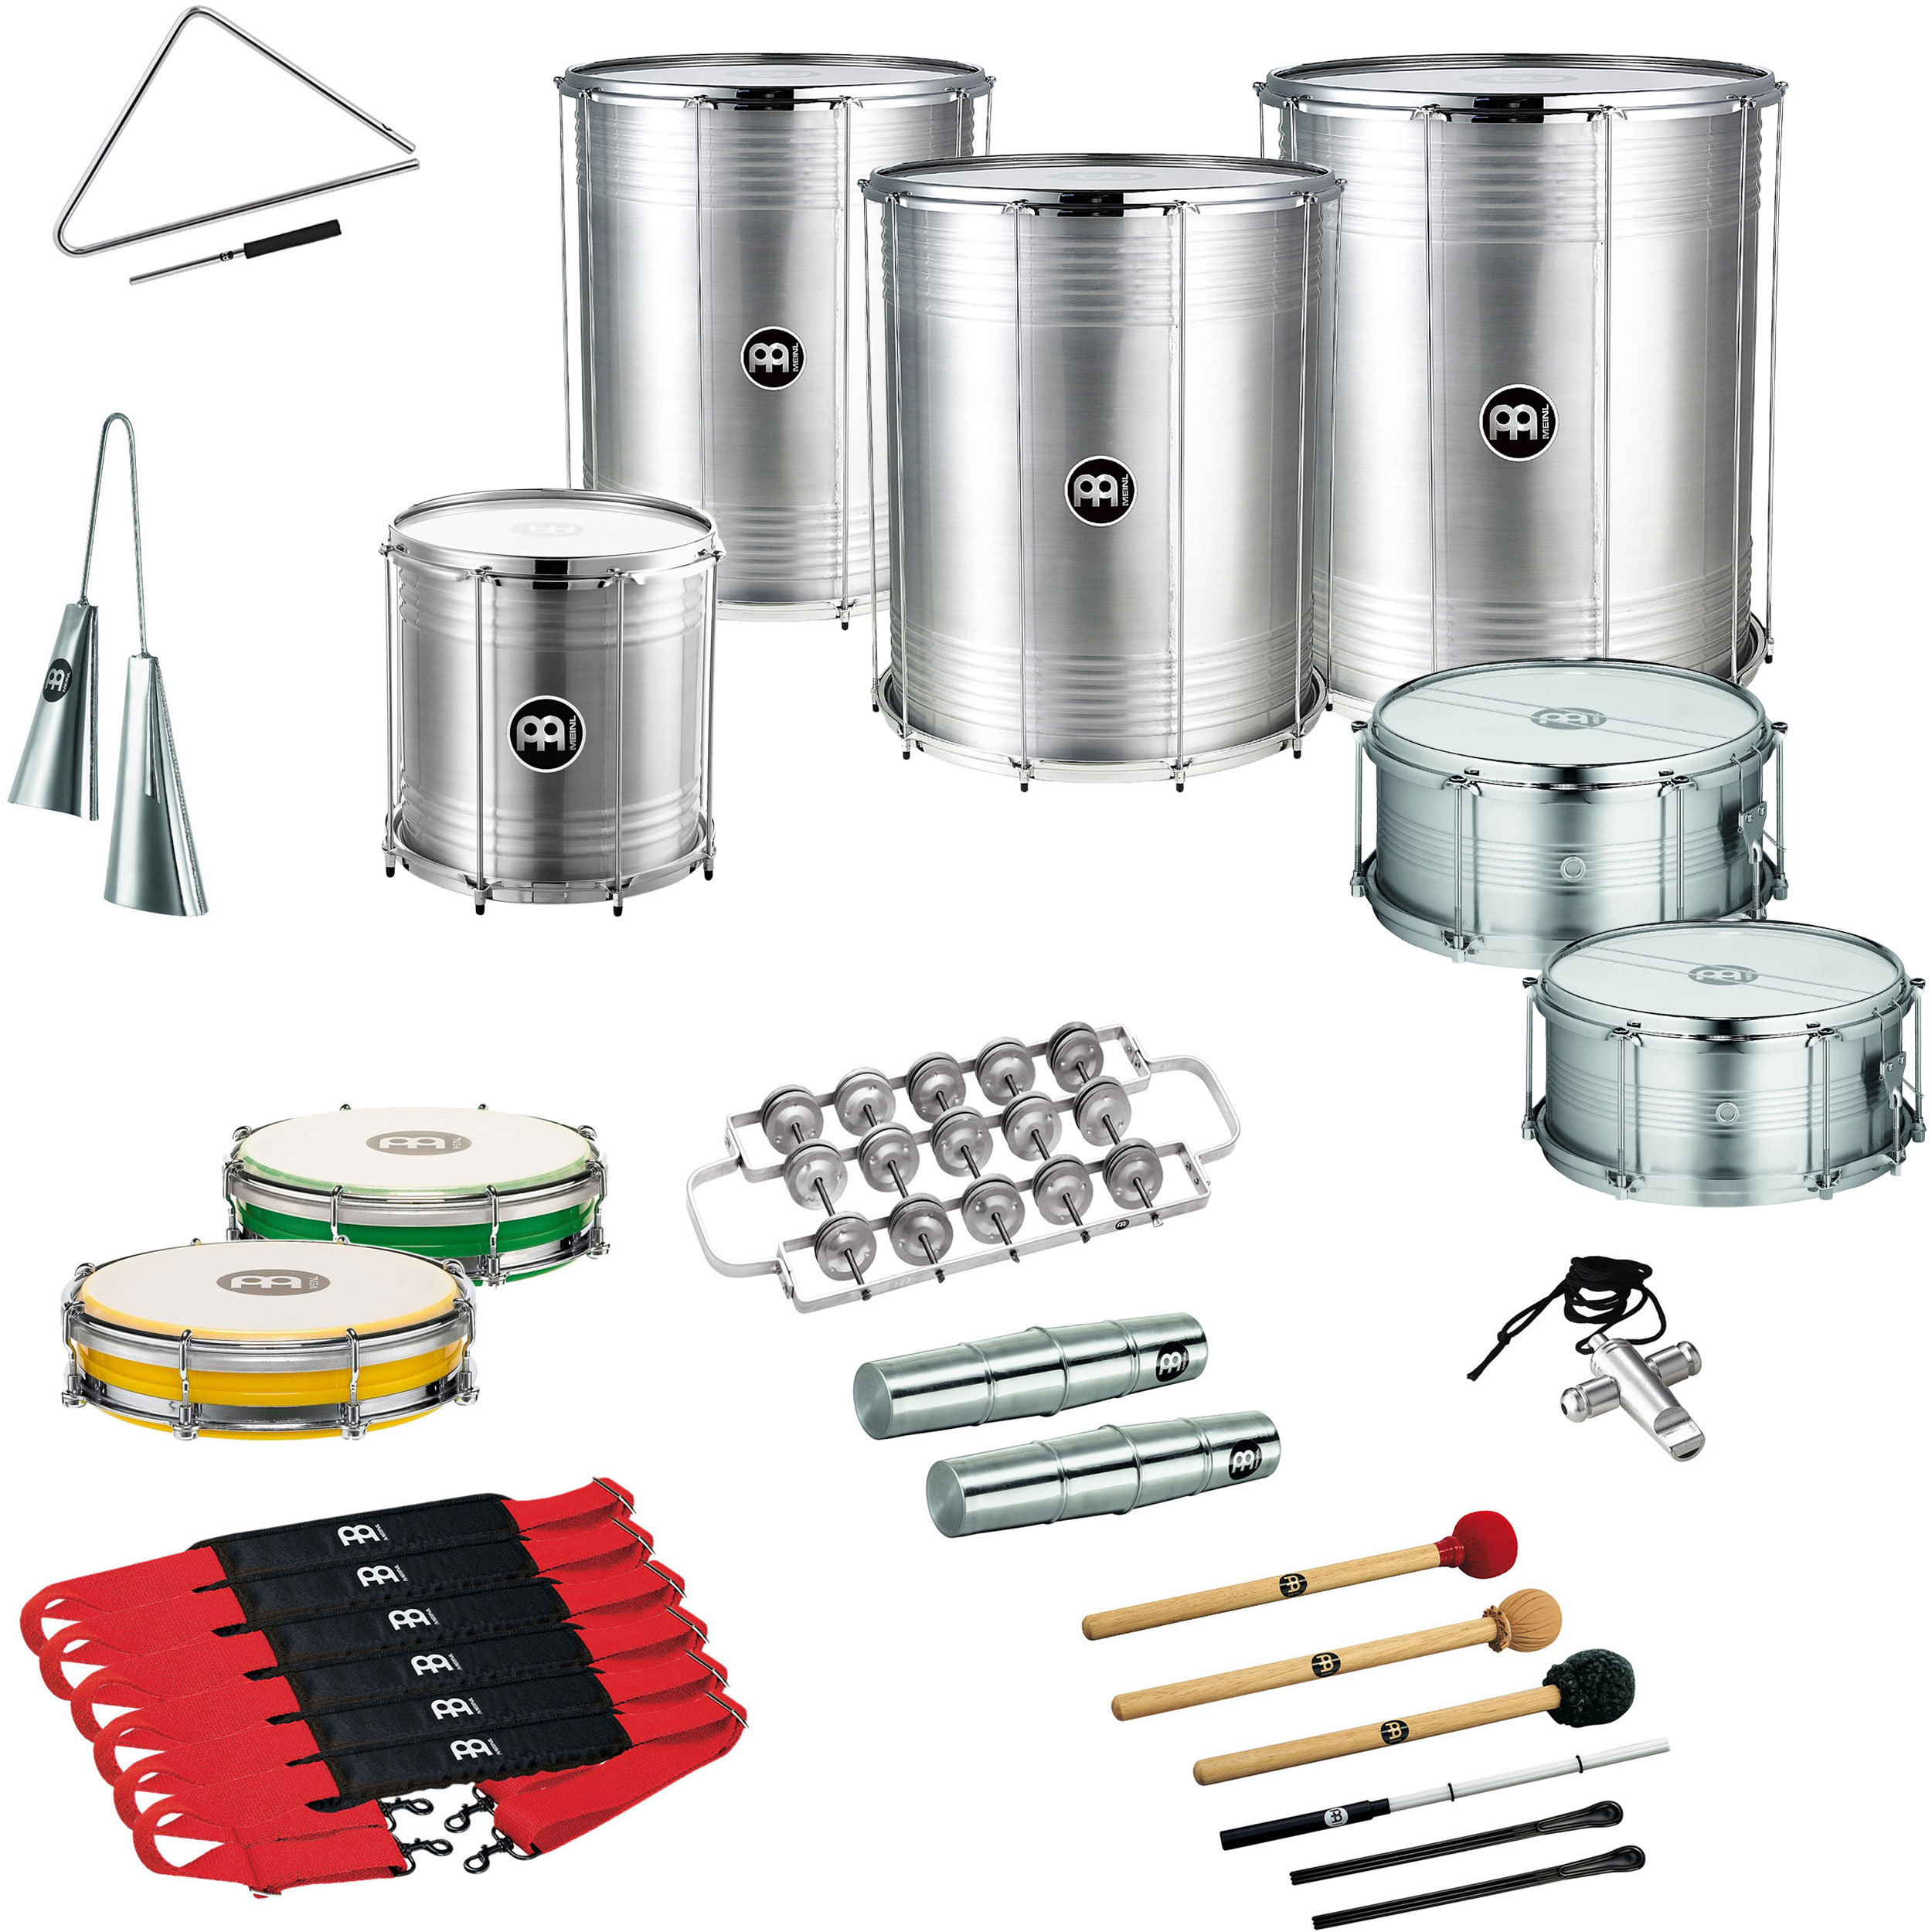 Meinl Samba Package for 12 Players